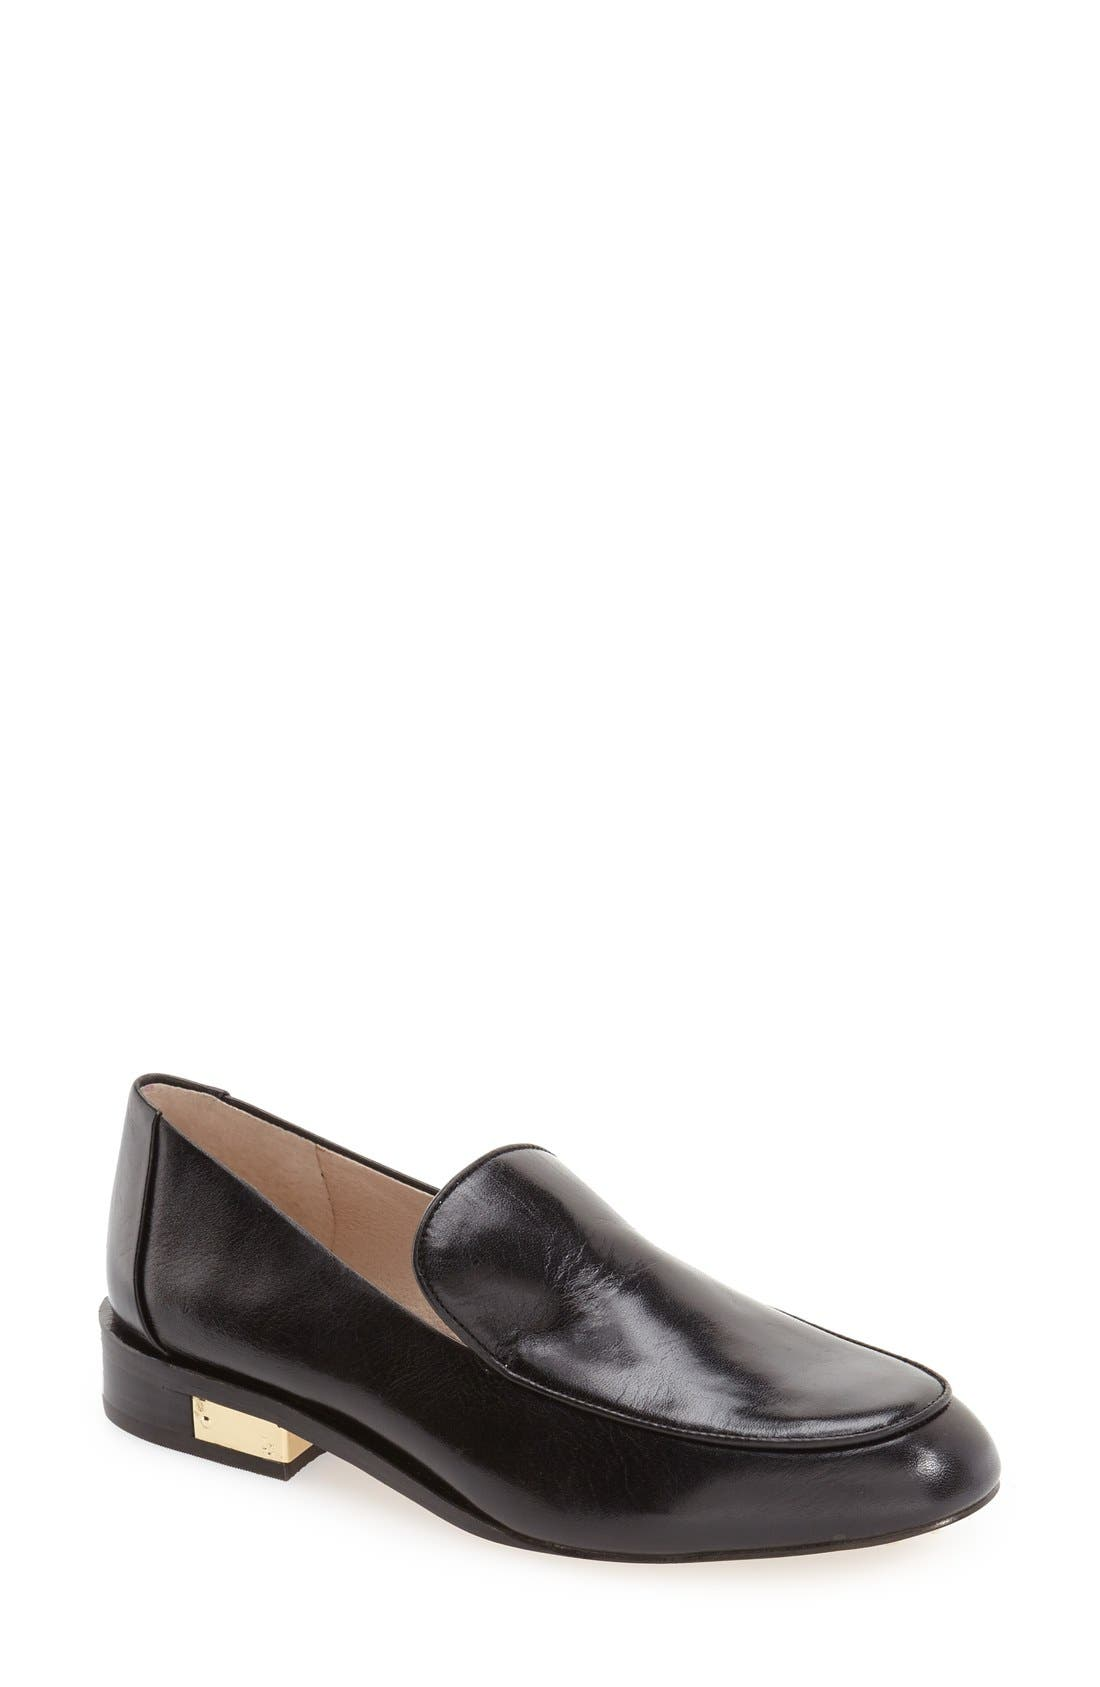 Alternate Image 1 Selected - Louise et Cie 'Beran' Loafer (Women)